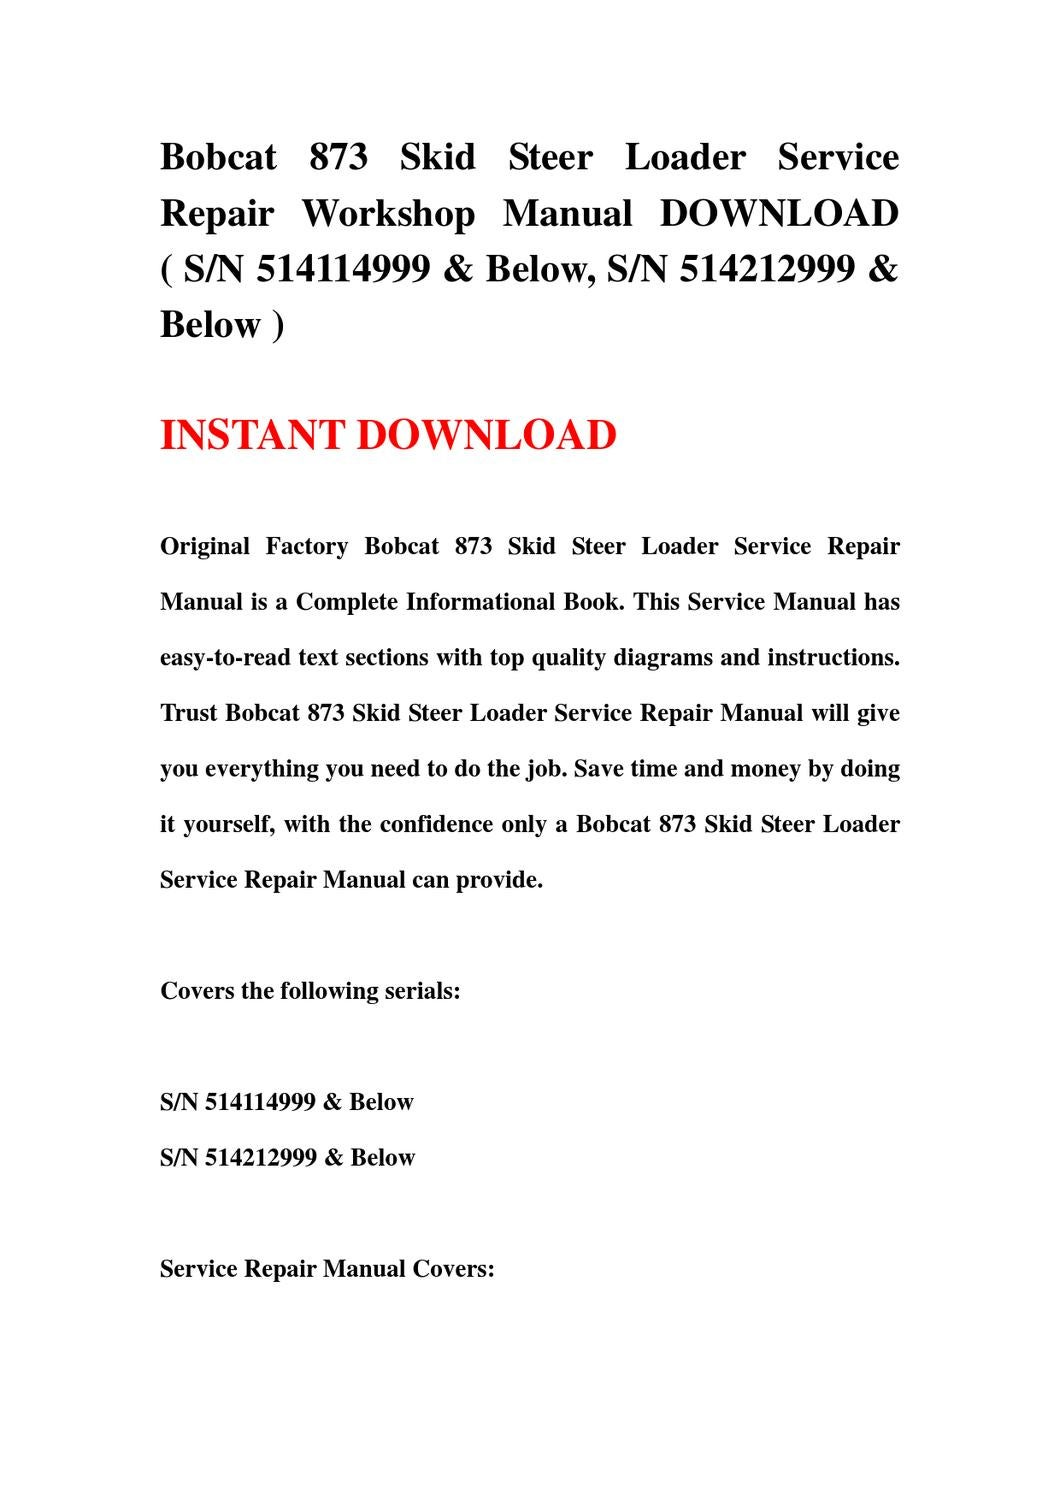 hight resolution of bobcat 873 skid steer loader service repair workshop manual download sn 514114999 below sn 5142